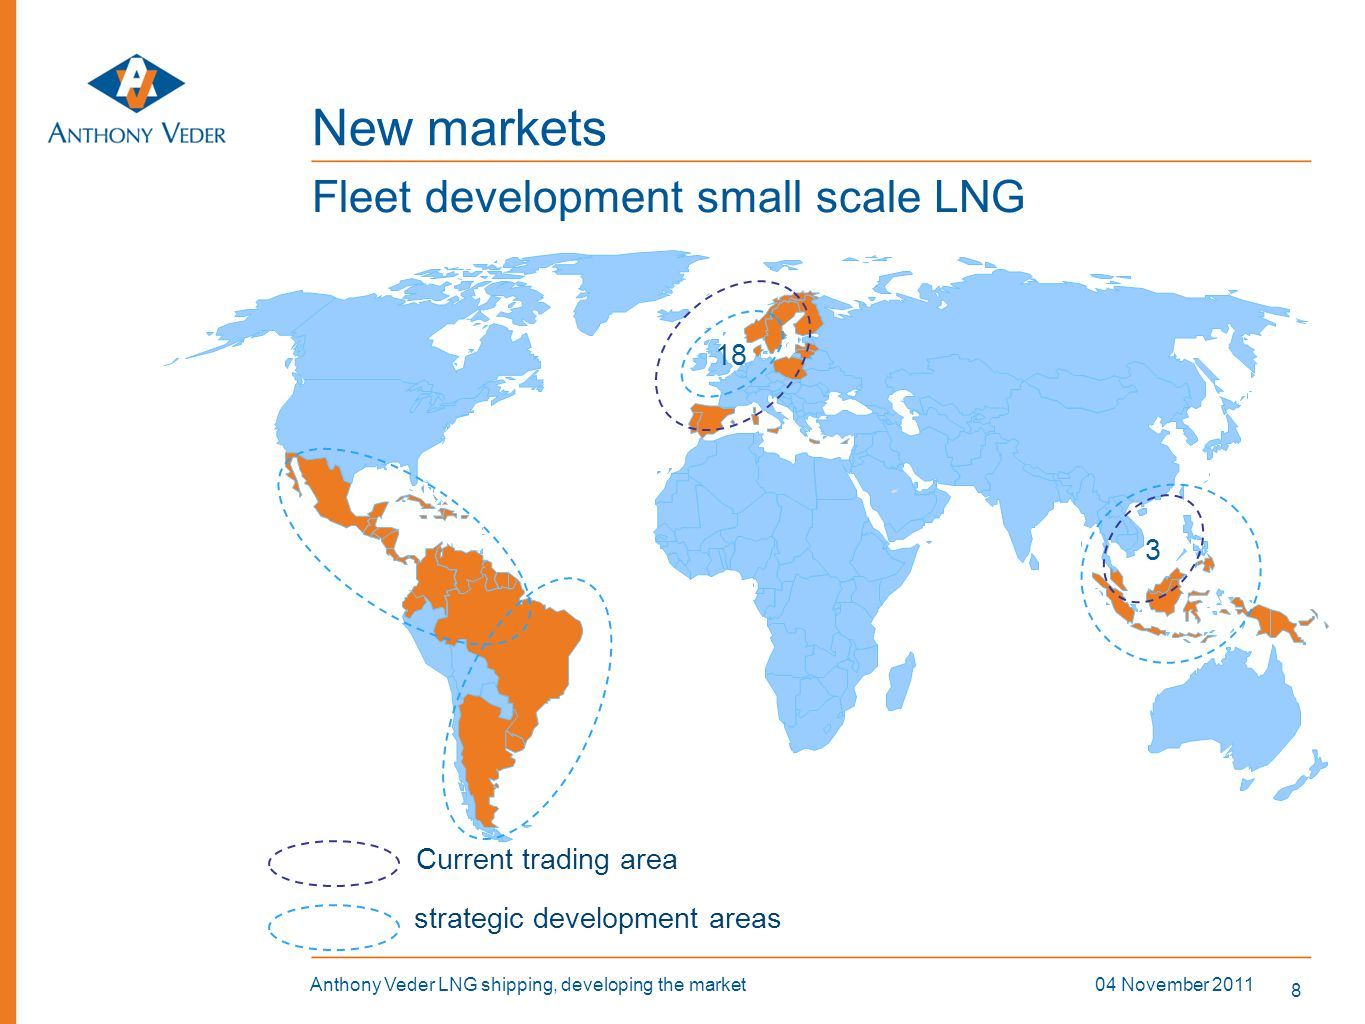 8 04 November 2011Anthony Veder LNG shipping, developing the market New markets Fleet development small scale LNG 18 3 Current trading area strategic